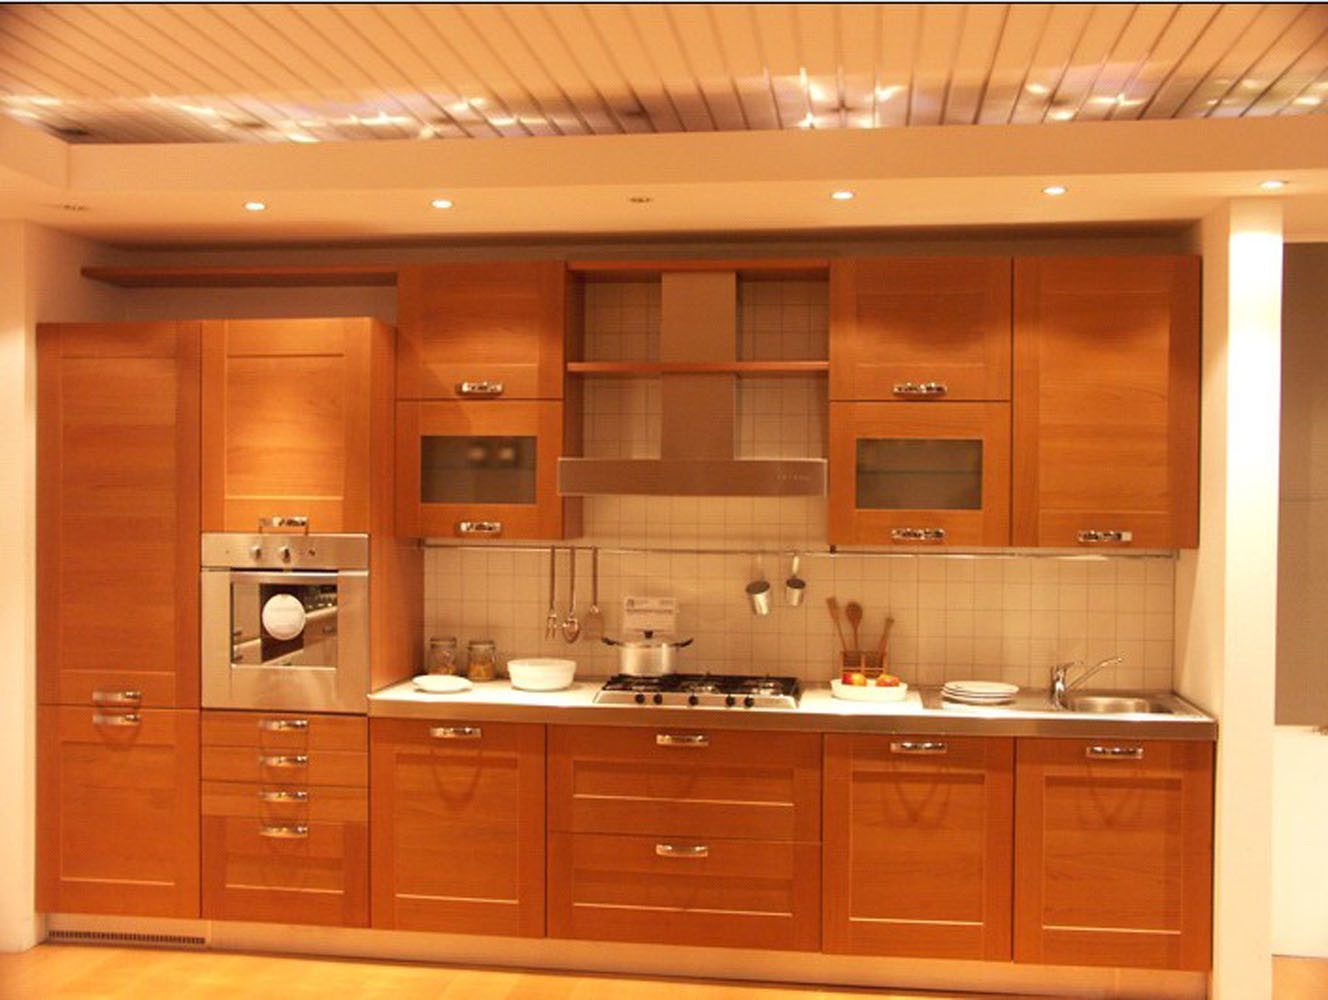 China Shaker Style Kitchen Cabinet - large image for Kitchen Cabinet